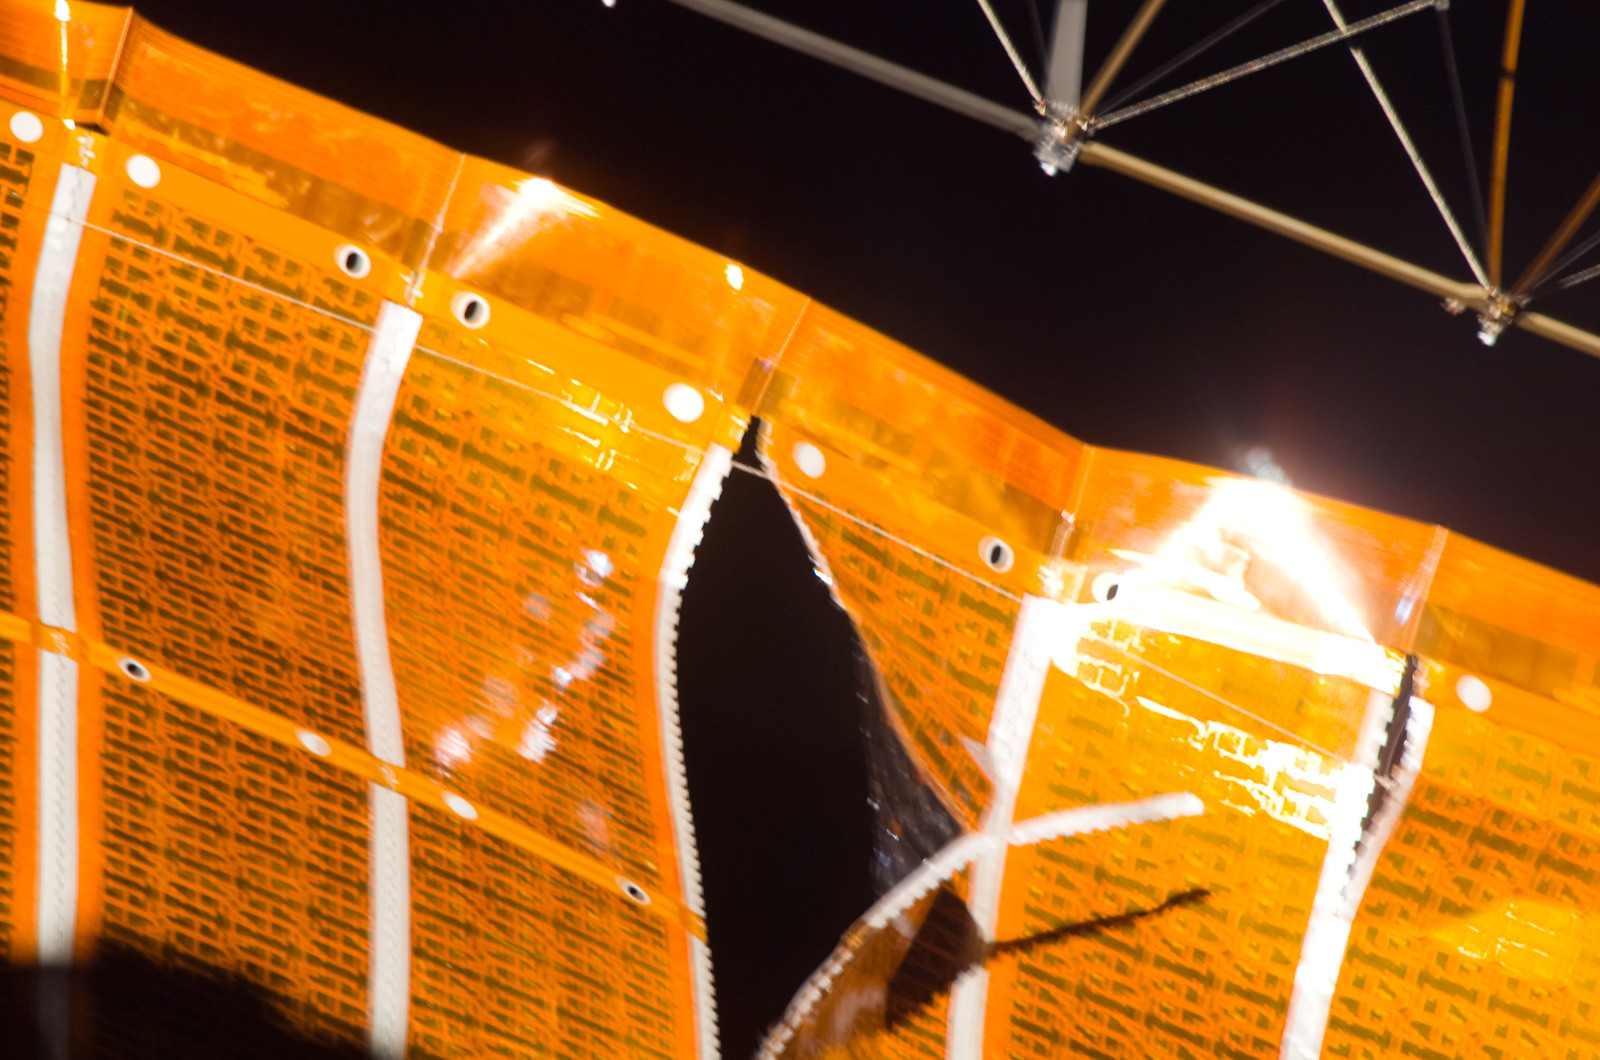 S120E008251 - STS-120 - Damaged P6 4B solar array wing